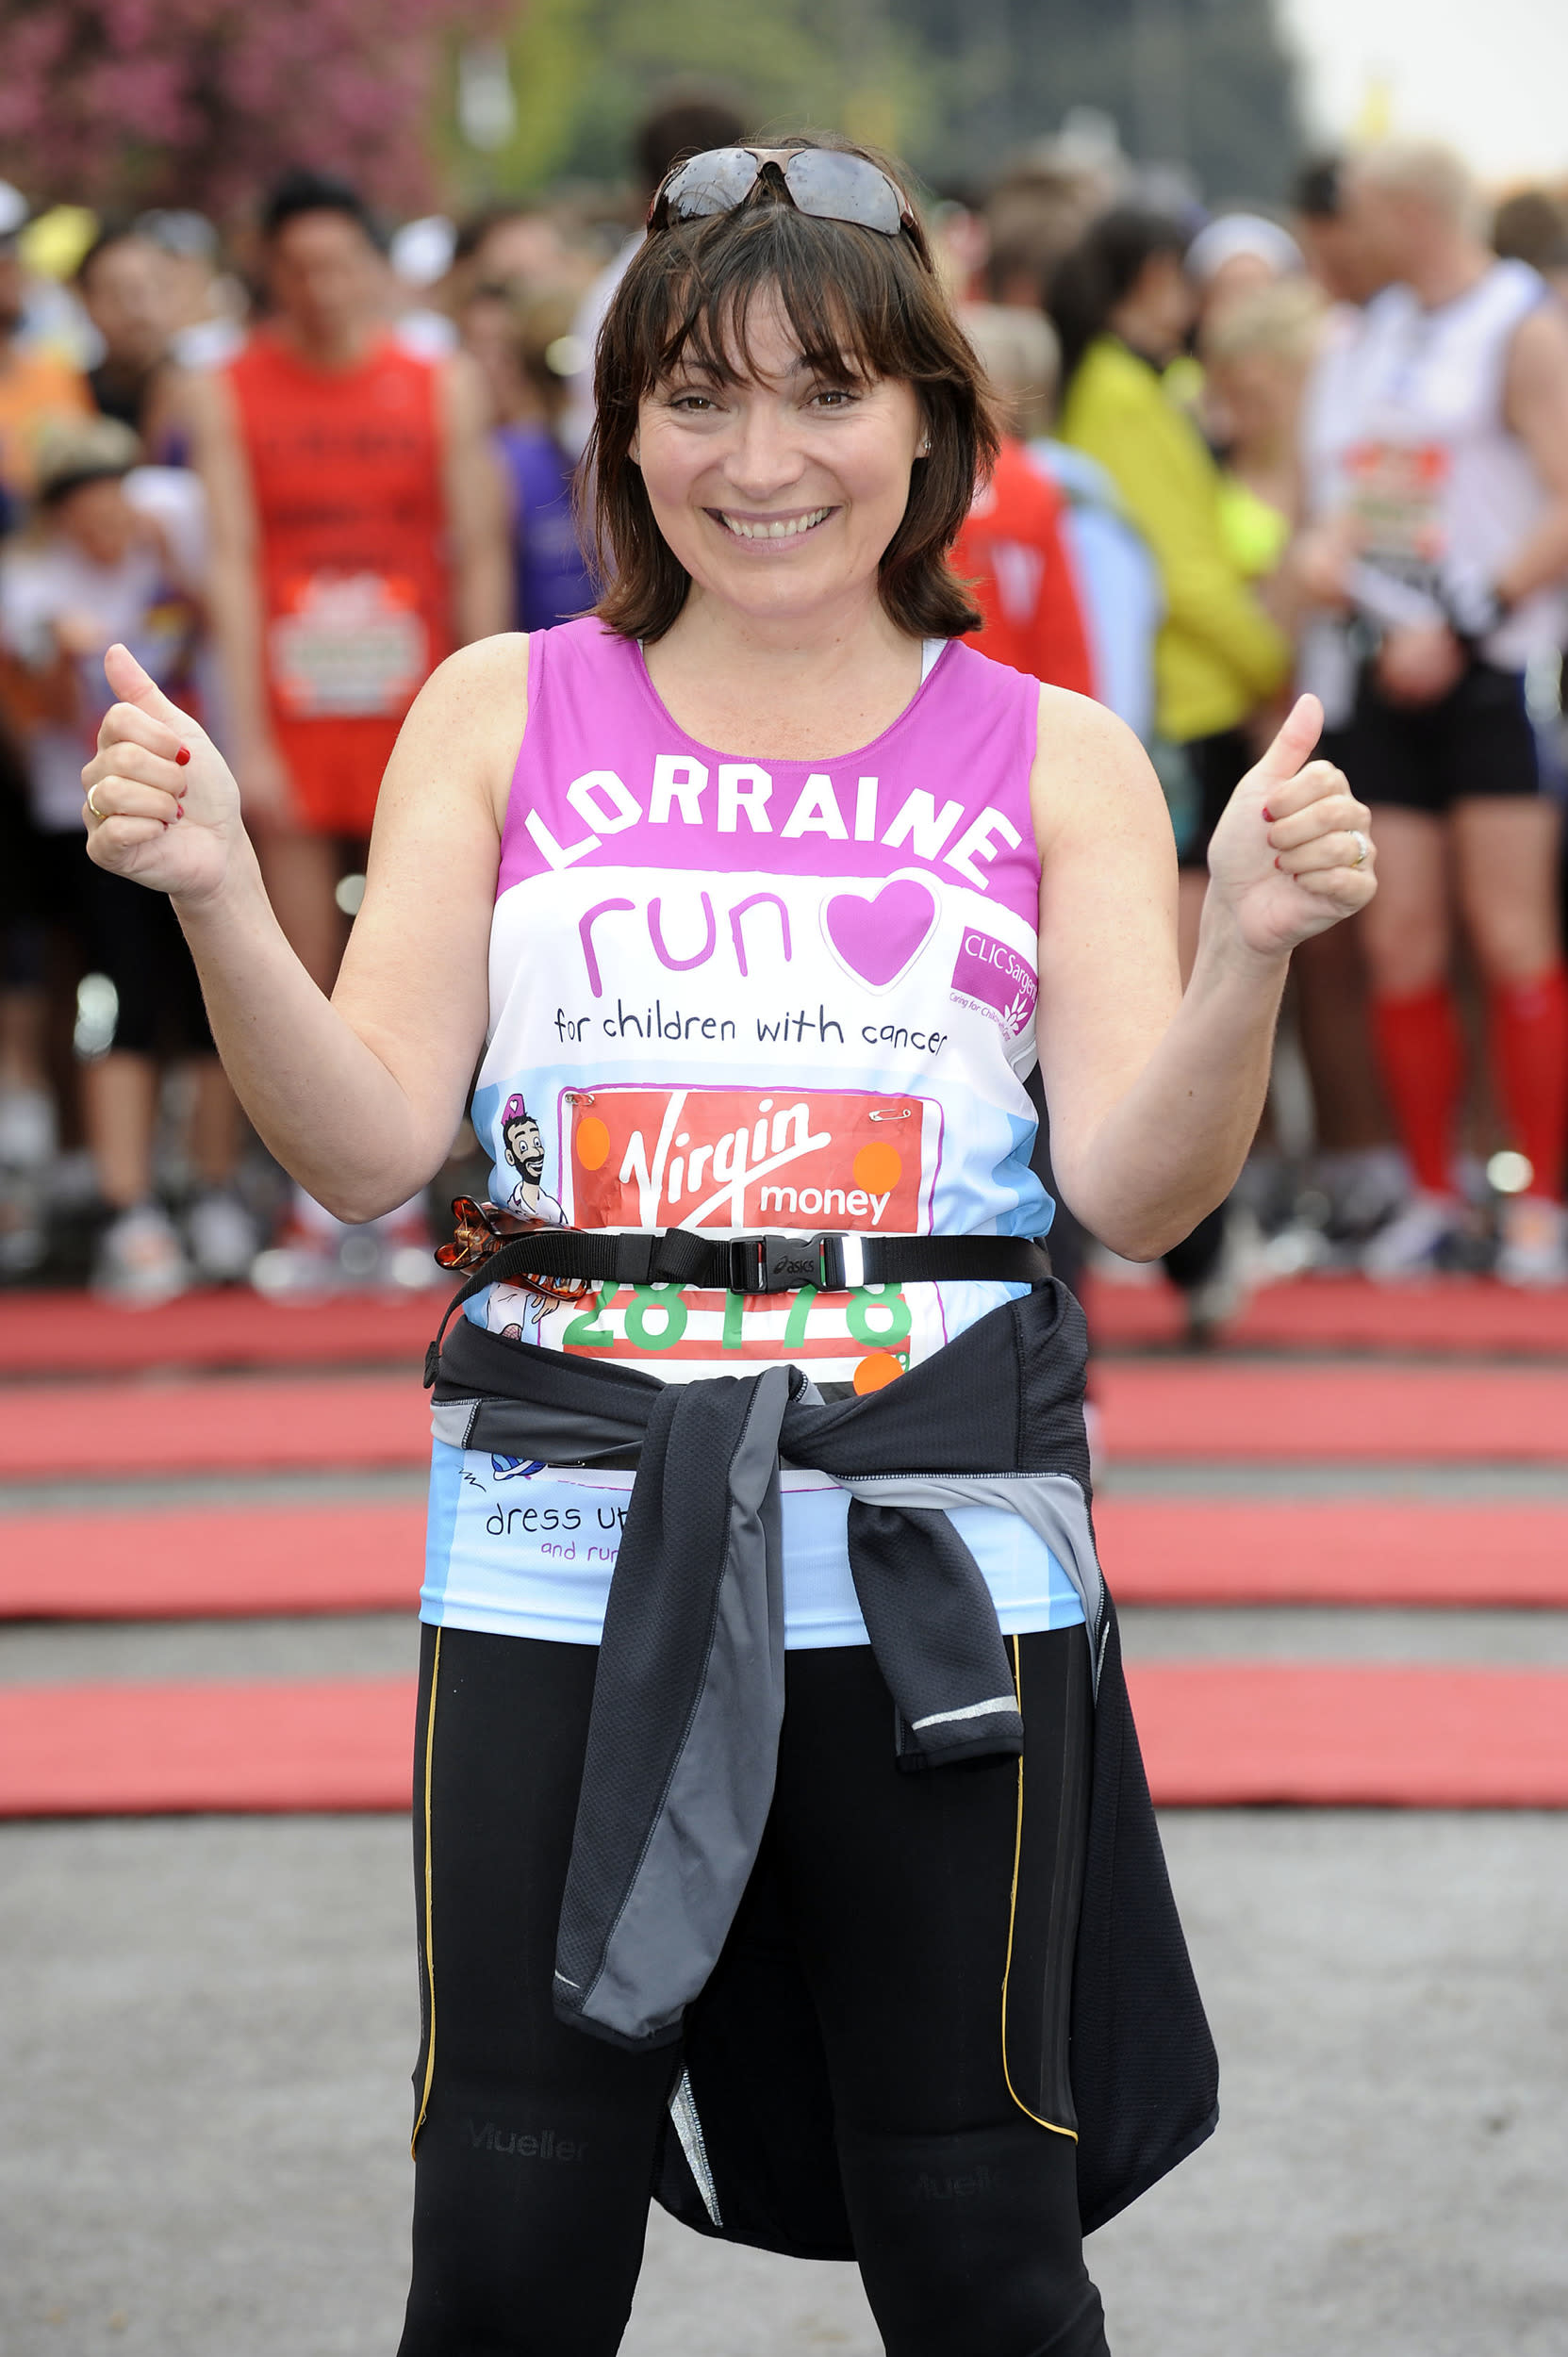 Lorraine Kelly is seen at the start of the 2010 London Marathon, at Blackheath in south London.